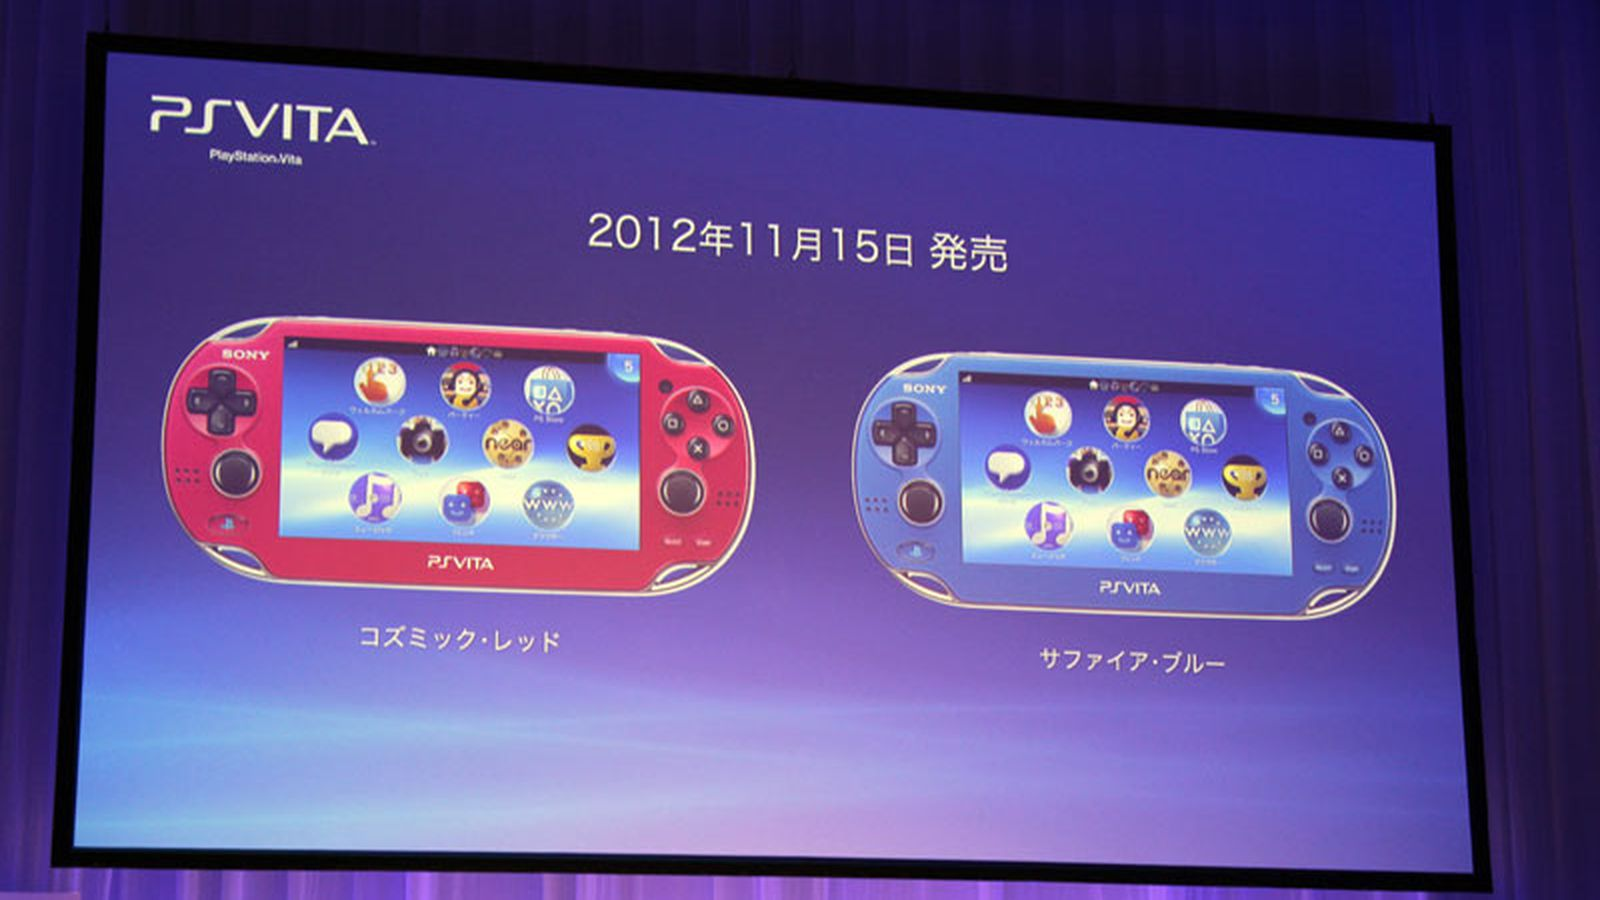 PlayStation Vita (3G + Wi-Fi) | Sony - The Verge